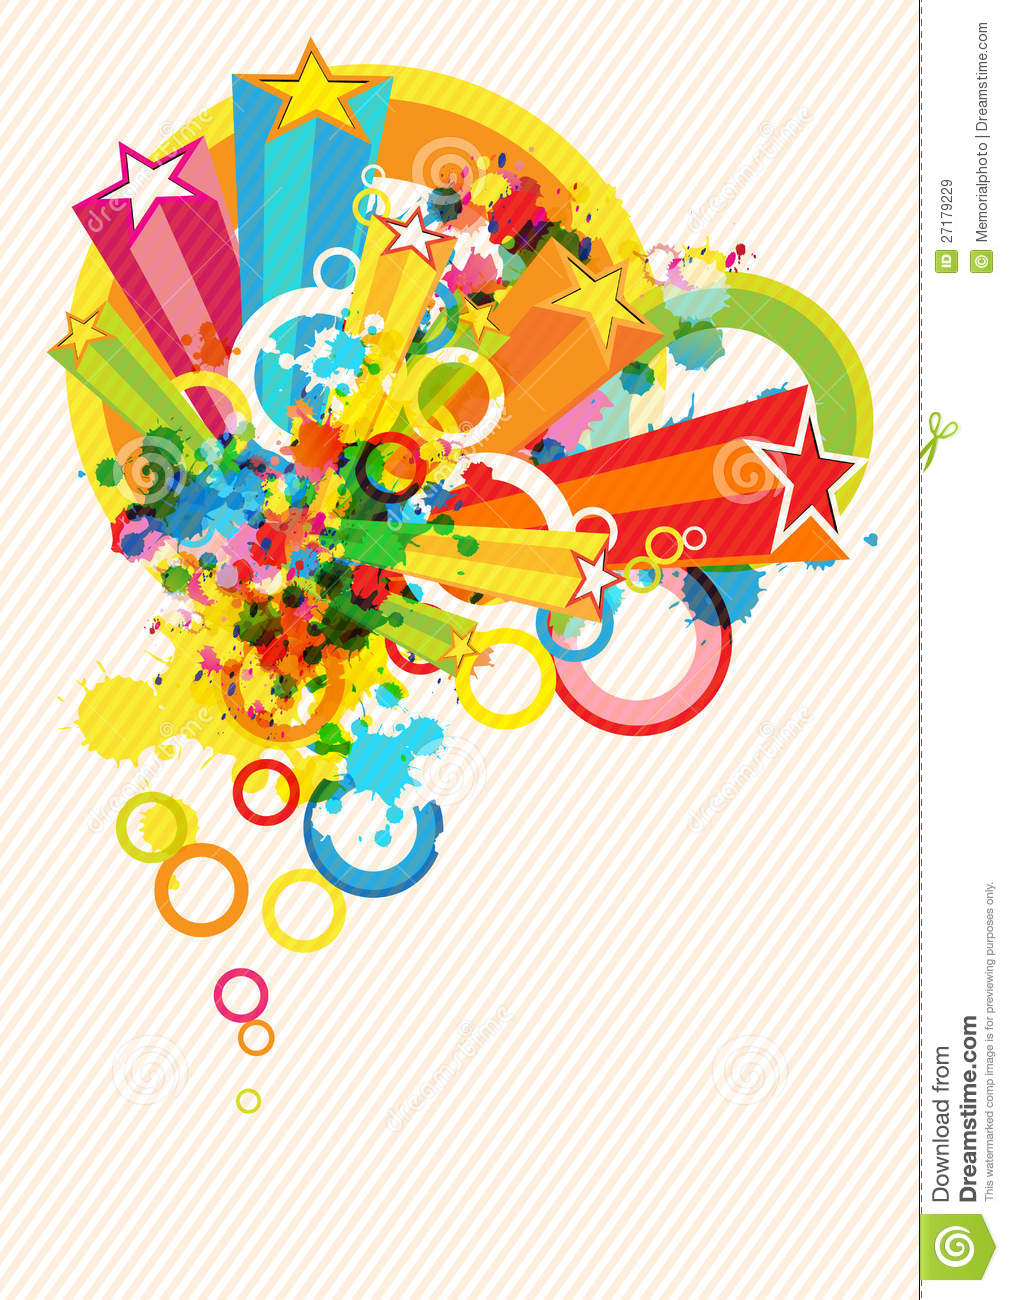 Festival decoration background royalty free stock images for Background decoration images